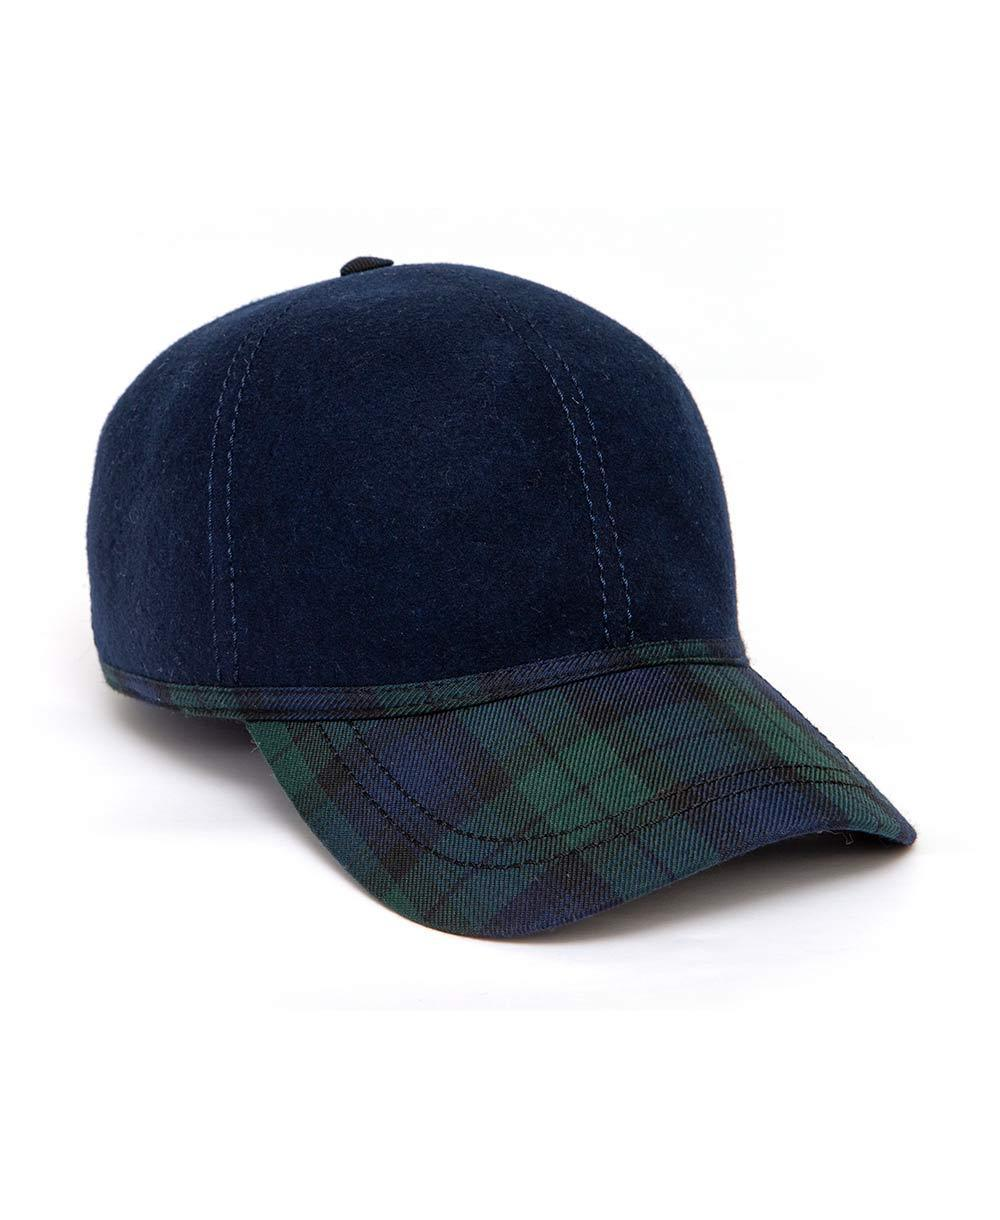 Goodwood Estate Navy Gordon Tartan Walking Cap